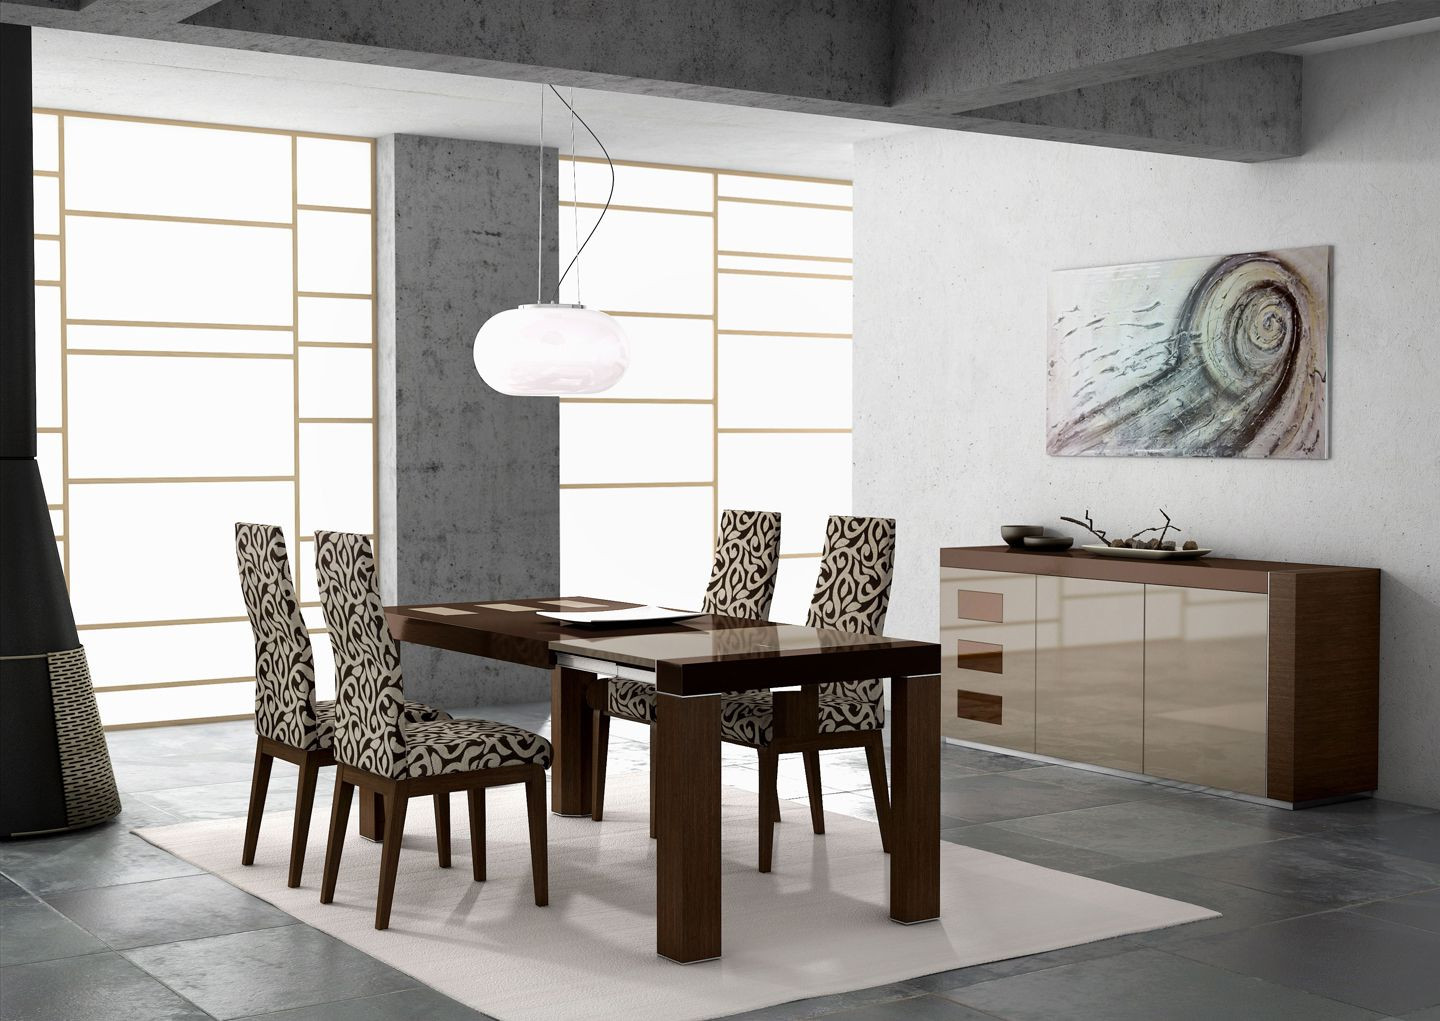 Best ideas about Modern Dining Room Chairs . Save or Pin Modern Dining Room Chairs Chosen for Stylish and Open Now.